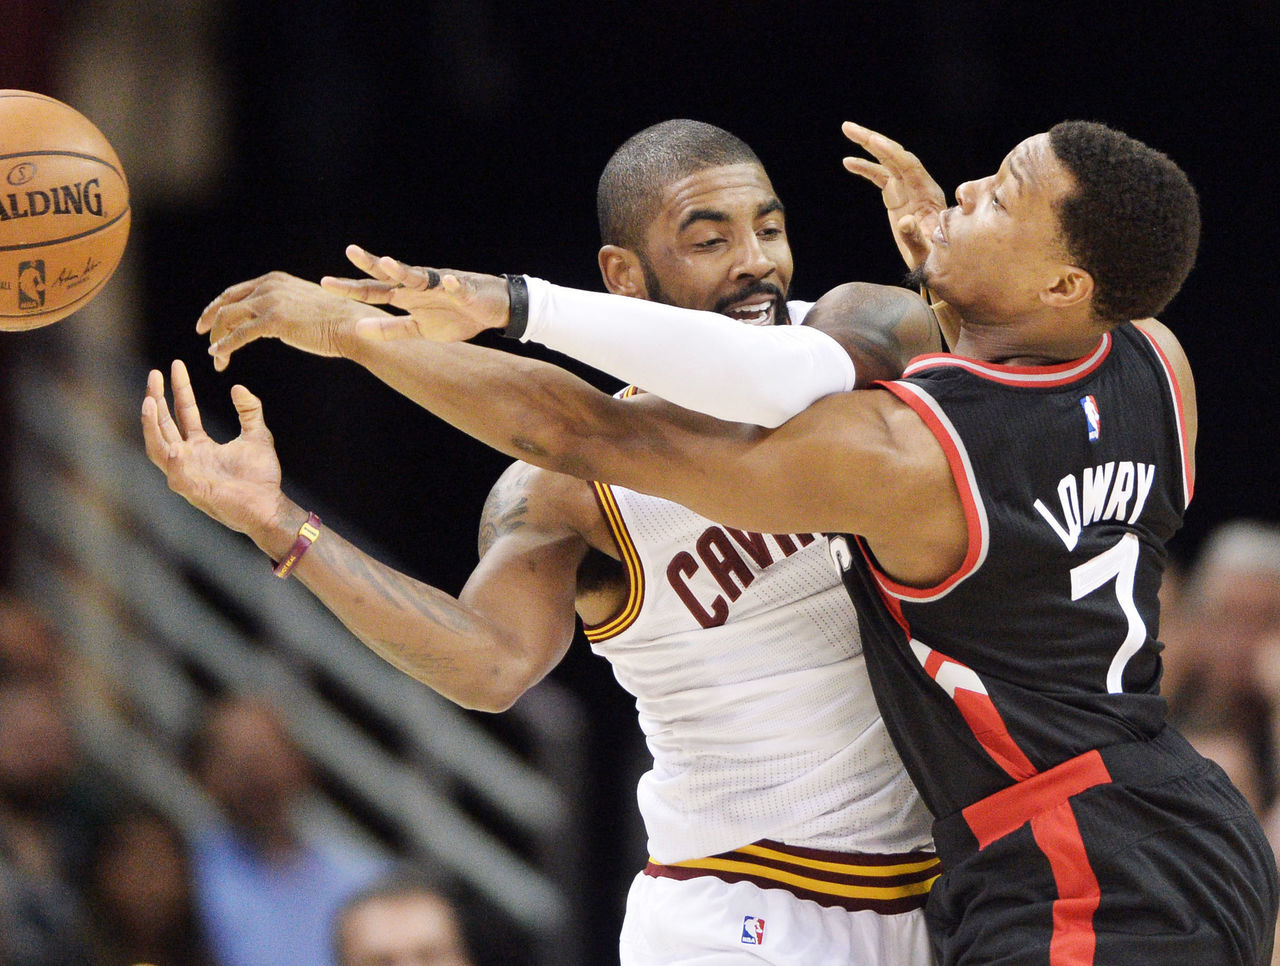 Cropped 2017 05 02t014713z 736863834 nocid rtrmadp 3 nba playoffs toronto raptors at cleveland cavaliers